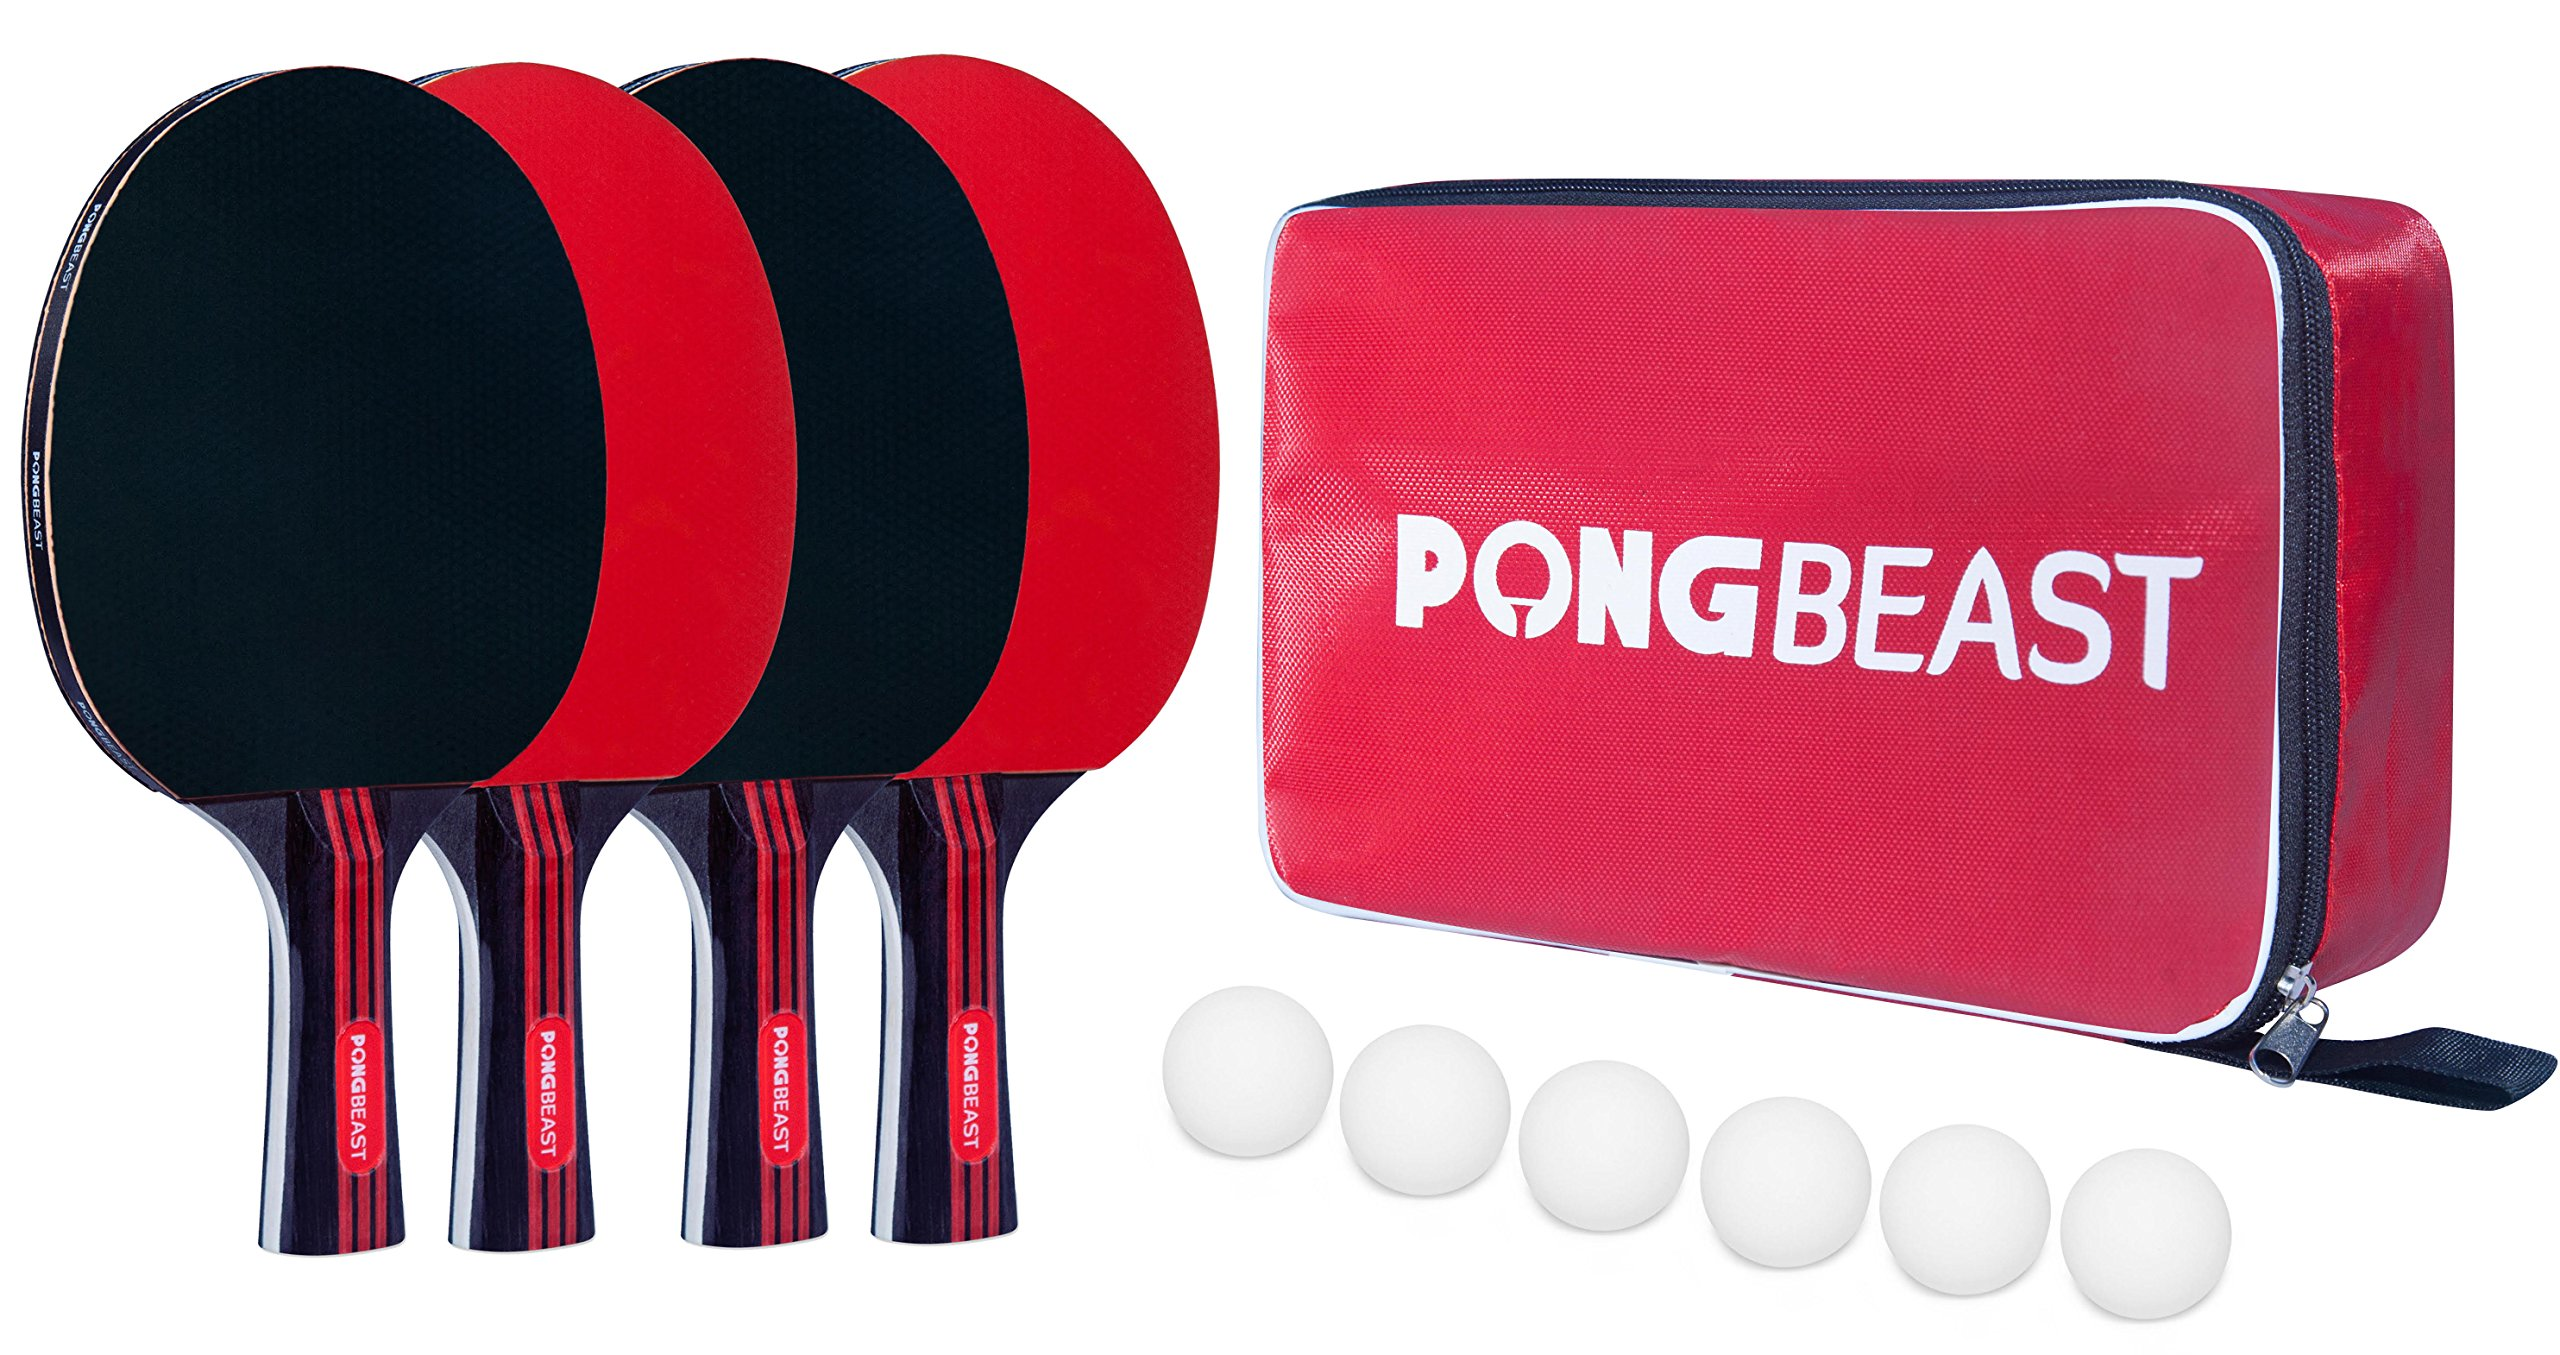 Ping Pong Paddle Set by PONGBEAST x 4-Player Premium Table Tennis Set x Includes 6 Table Tennis Balls and Carrying Case - Professional and Recreation Games - Indoor and Outdoor Ping Pong Paddles